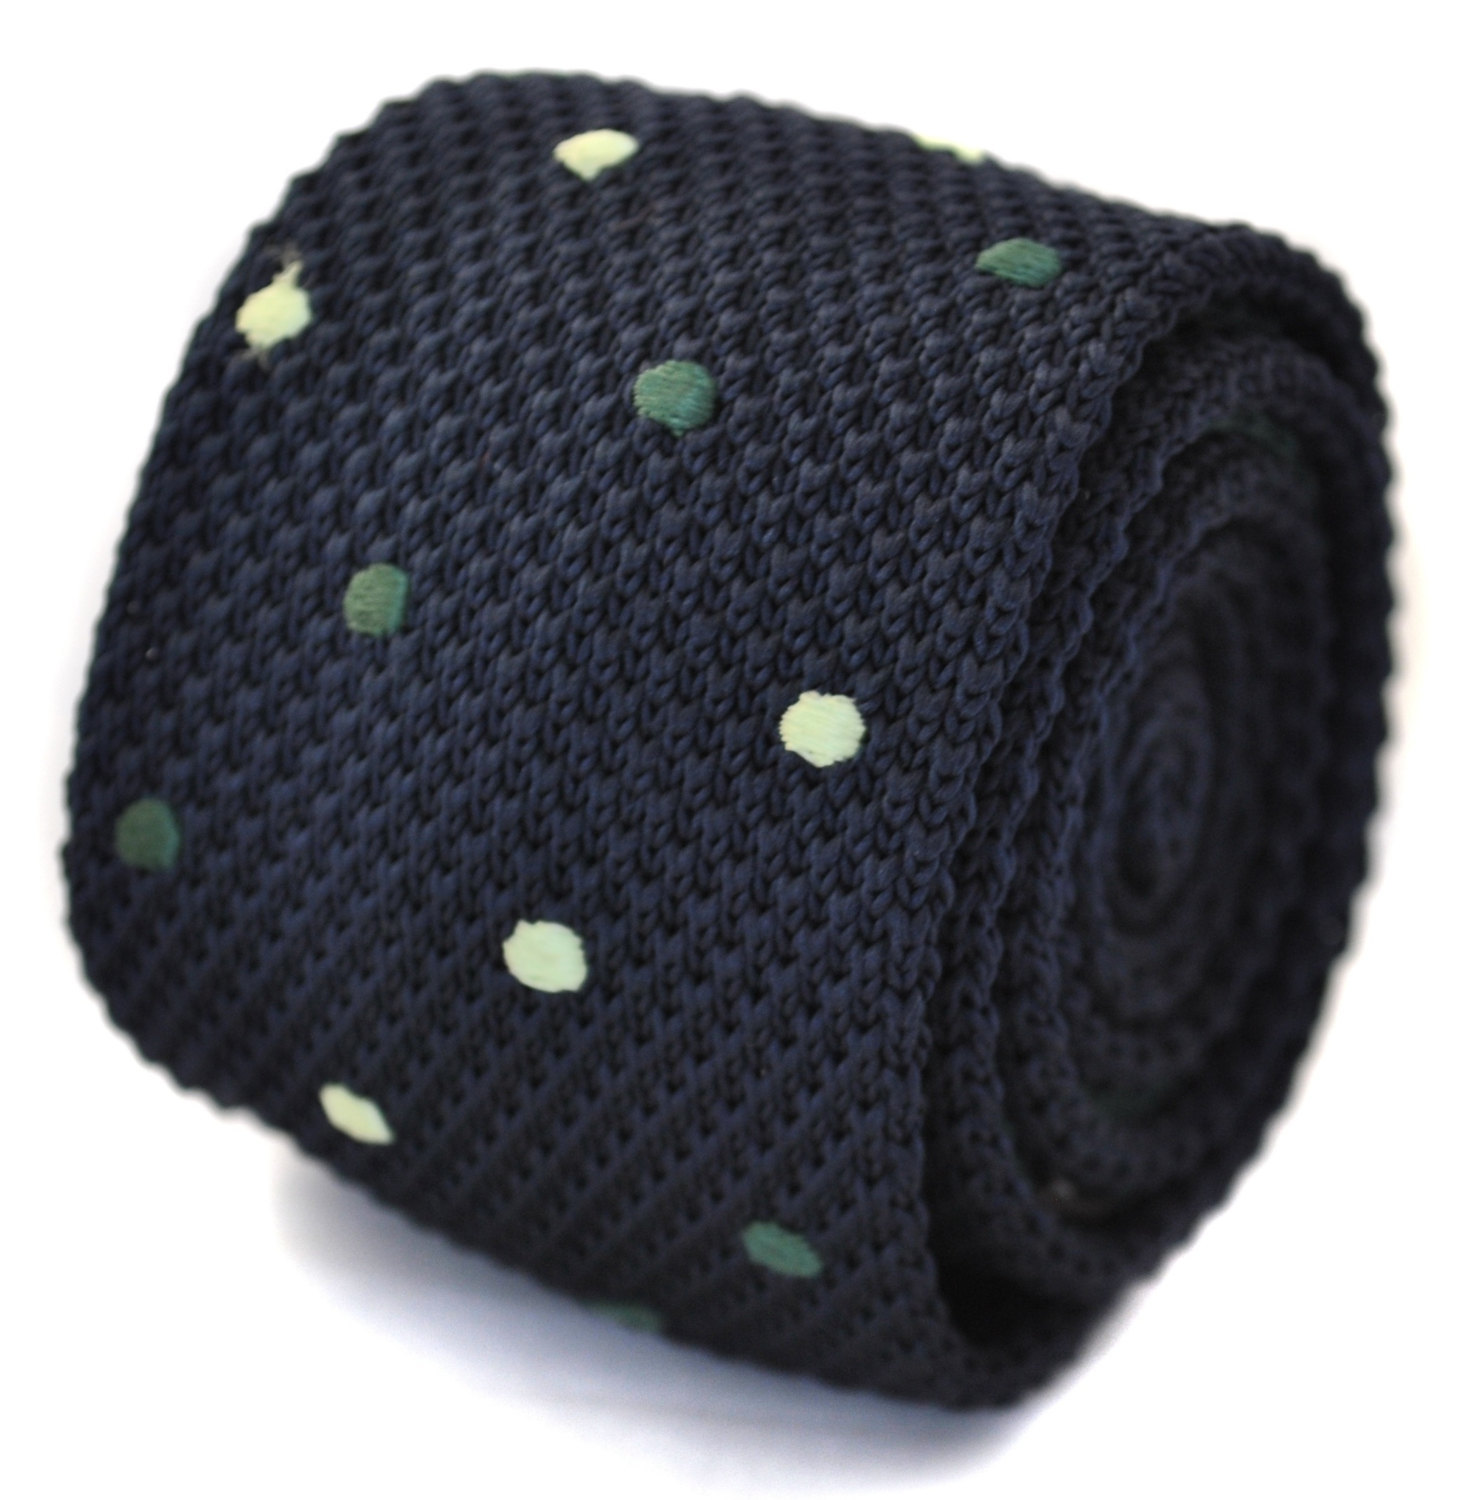 knitted navy and green spotted skinny tie by Frederick Thomas FT1182